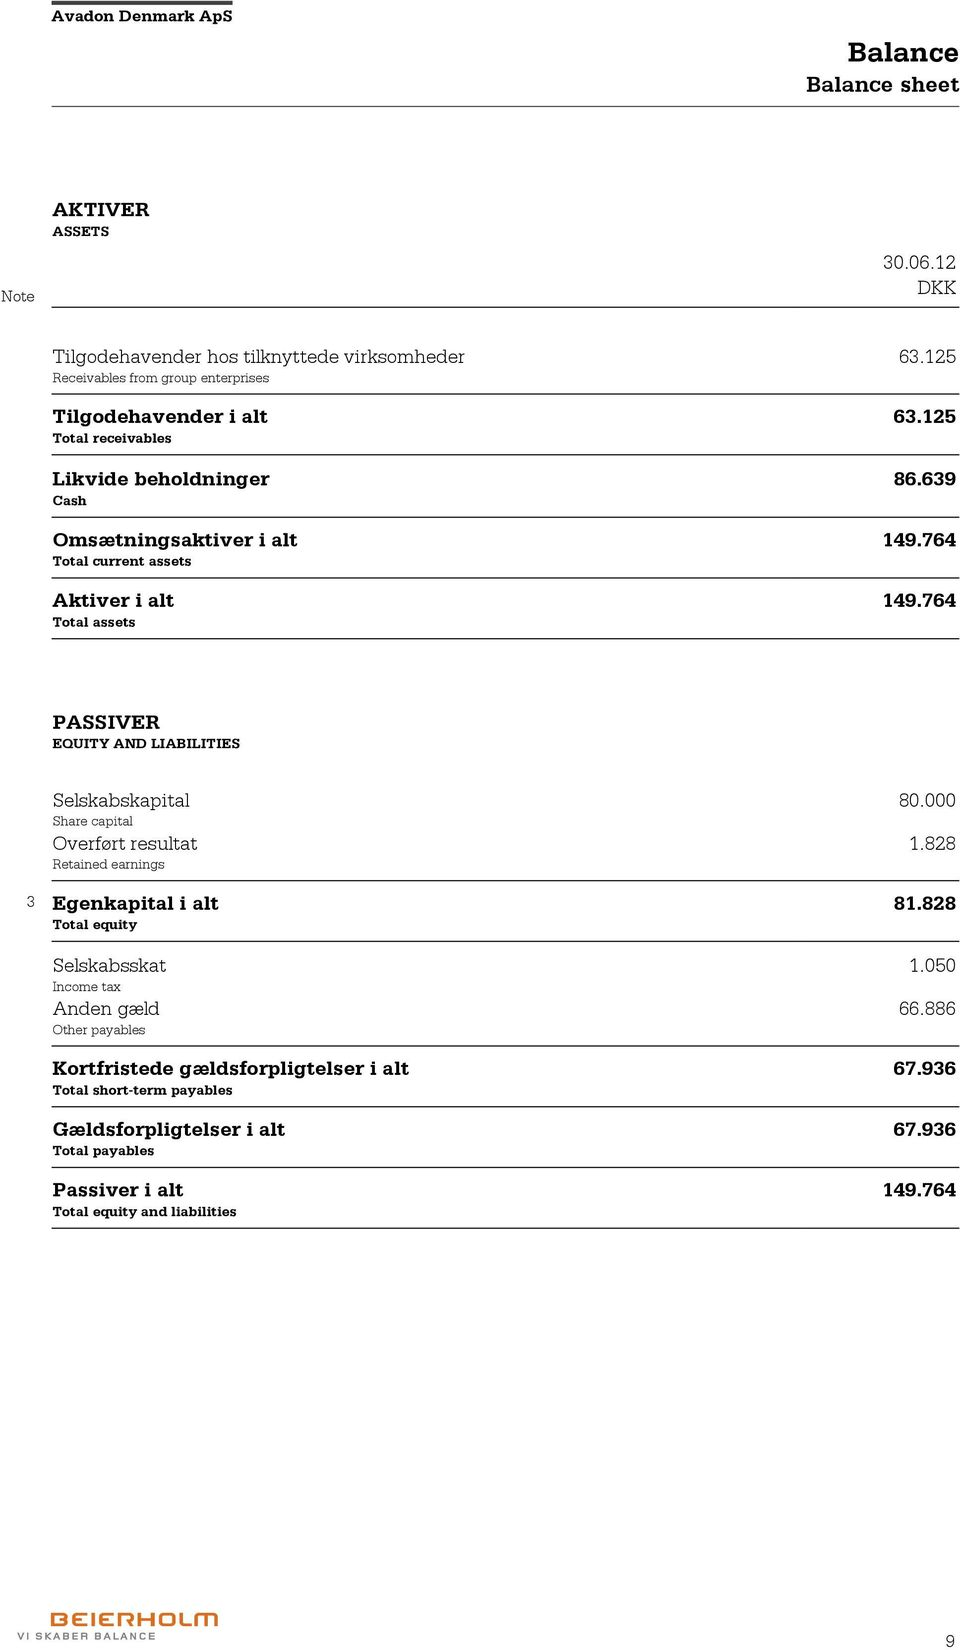 764 Total assets PASSIVER EQUITY AND LIABILITIES Selskabskapital 80.000 Share capital Overført resultat 1.828 Retained earnings 3 Egenkapital i alt 81.